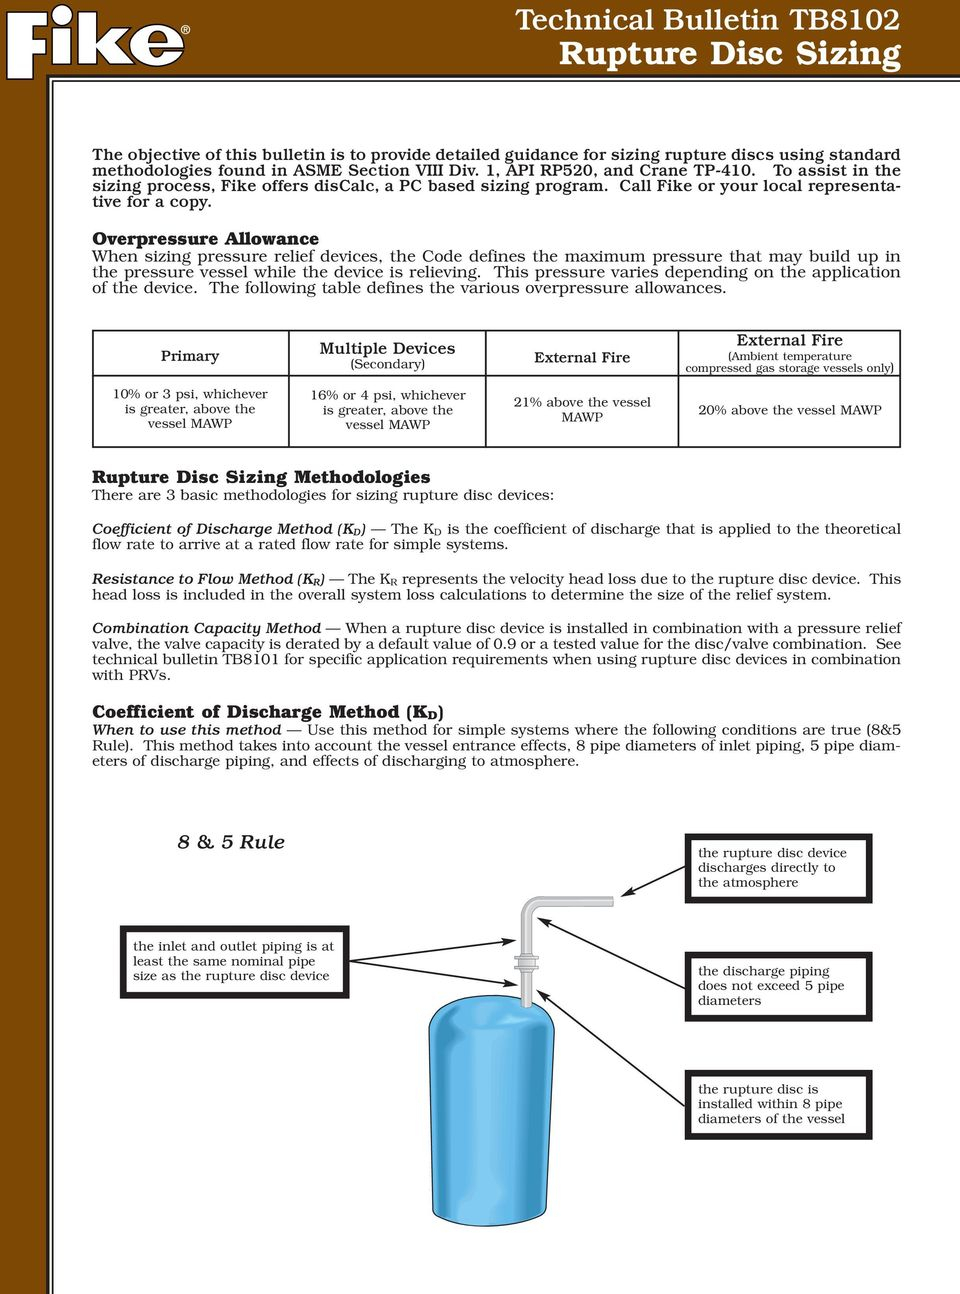 Rupture Disc Sizing Spreadsheet Throughout Technical Bulletin Tb8102 Rupture Disc Sizing  Pdf